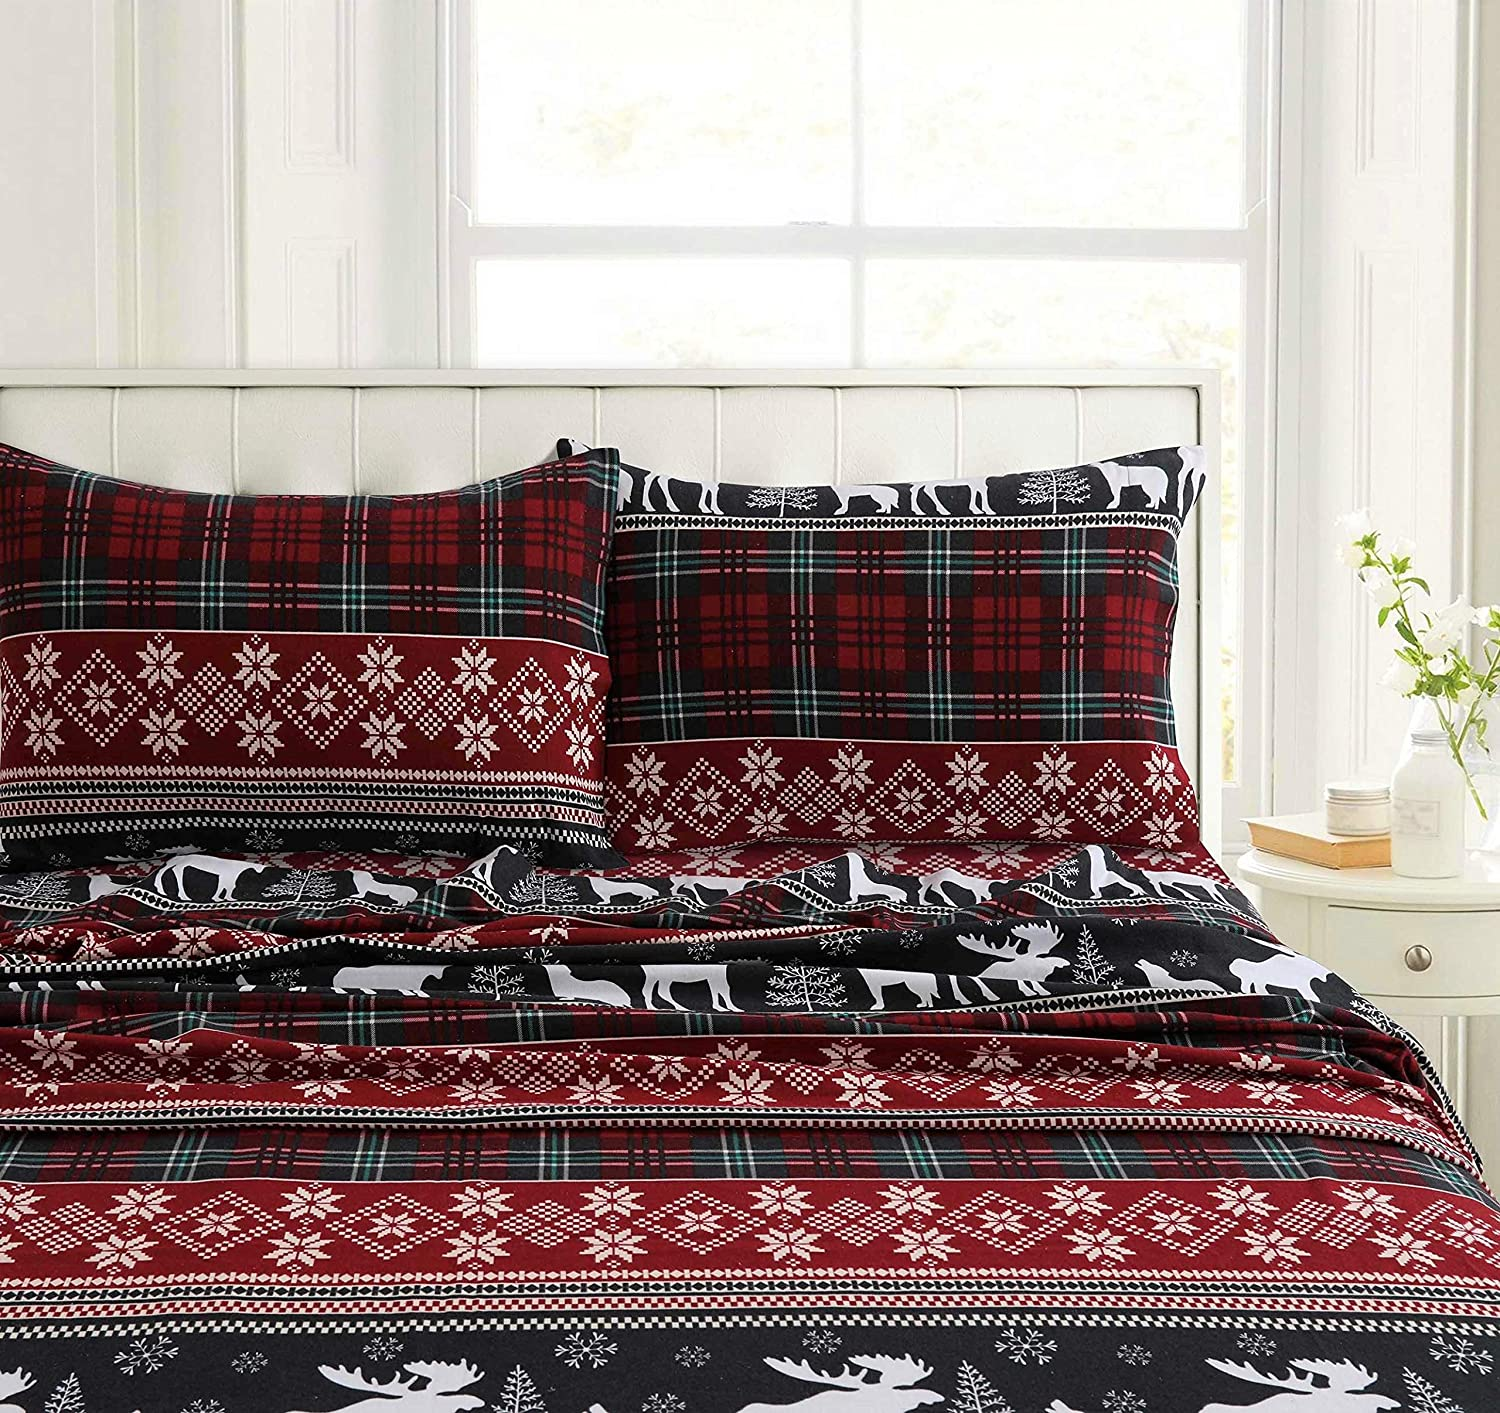 Tribeca Living HOLPLAIDSHCK Deep Pocket Sheet Set Cal King Holiday Plaid